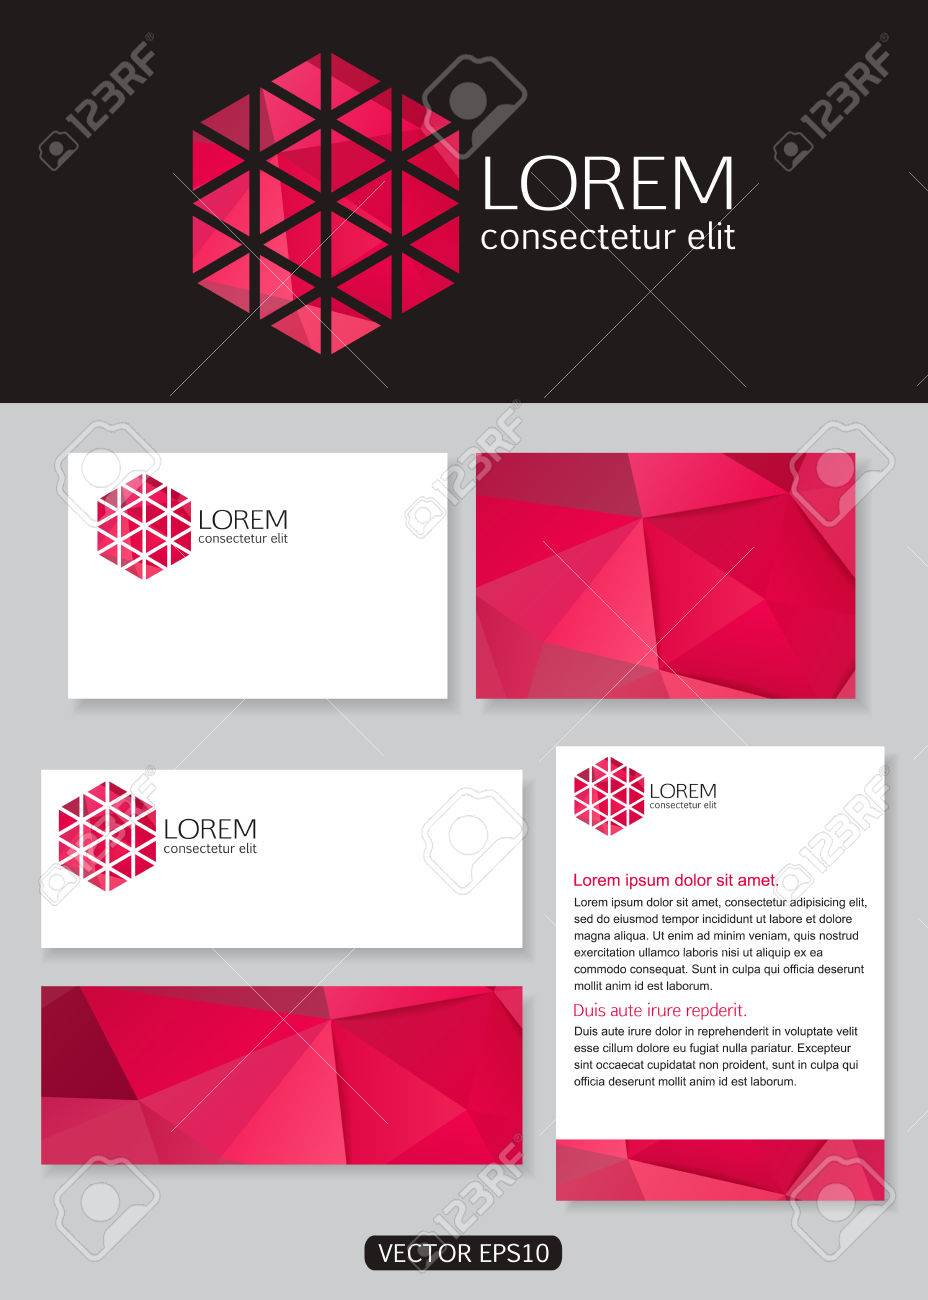 Geometric pink logo icon design with business cards banners geometric pink logo icon design with business cards banners and documentation for business vector colourmoves Image collections